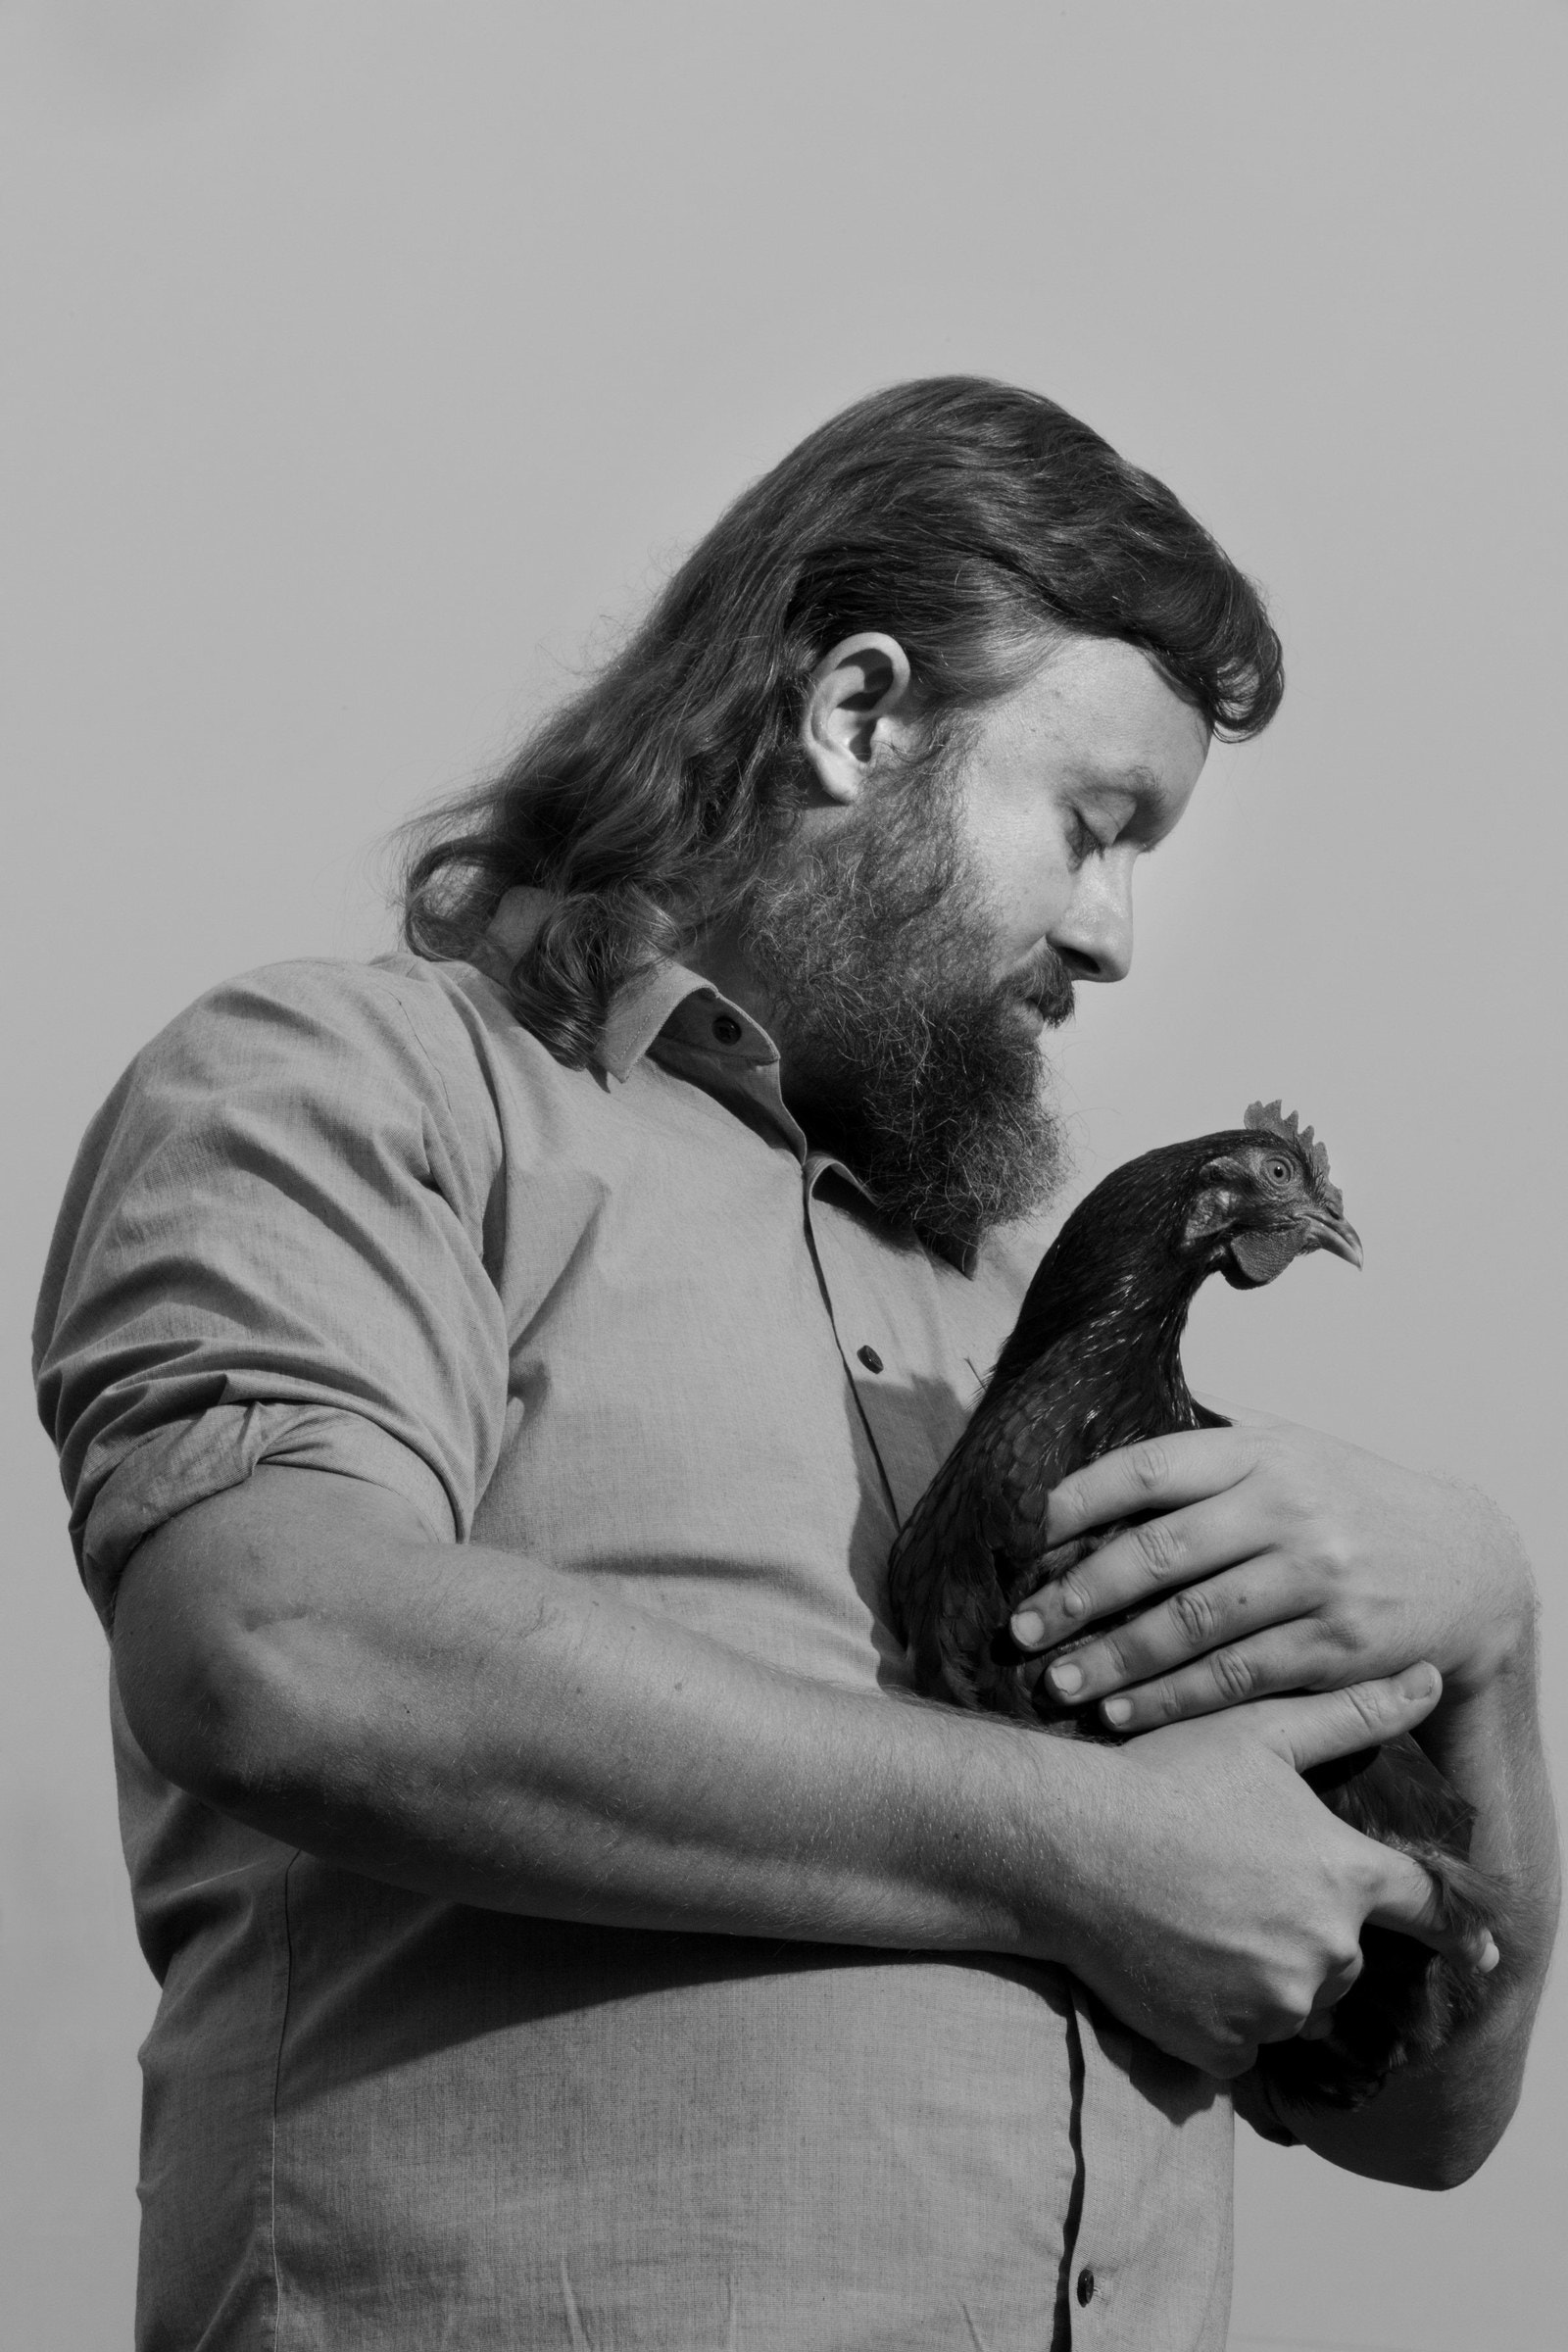 man holding a rooster